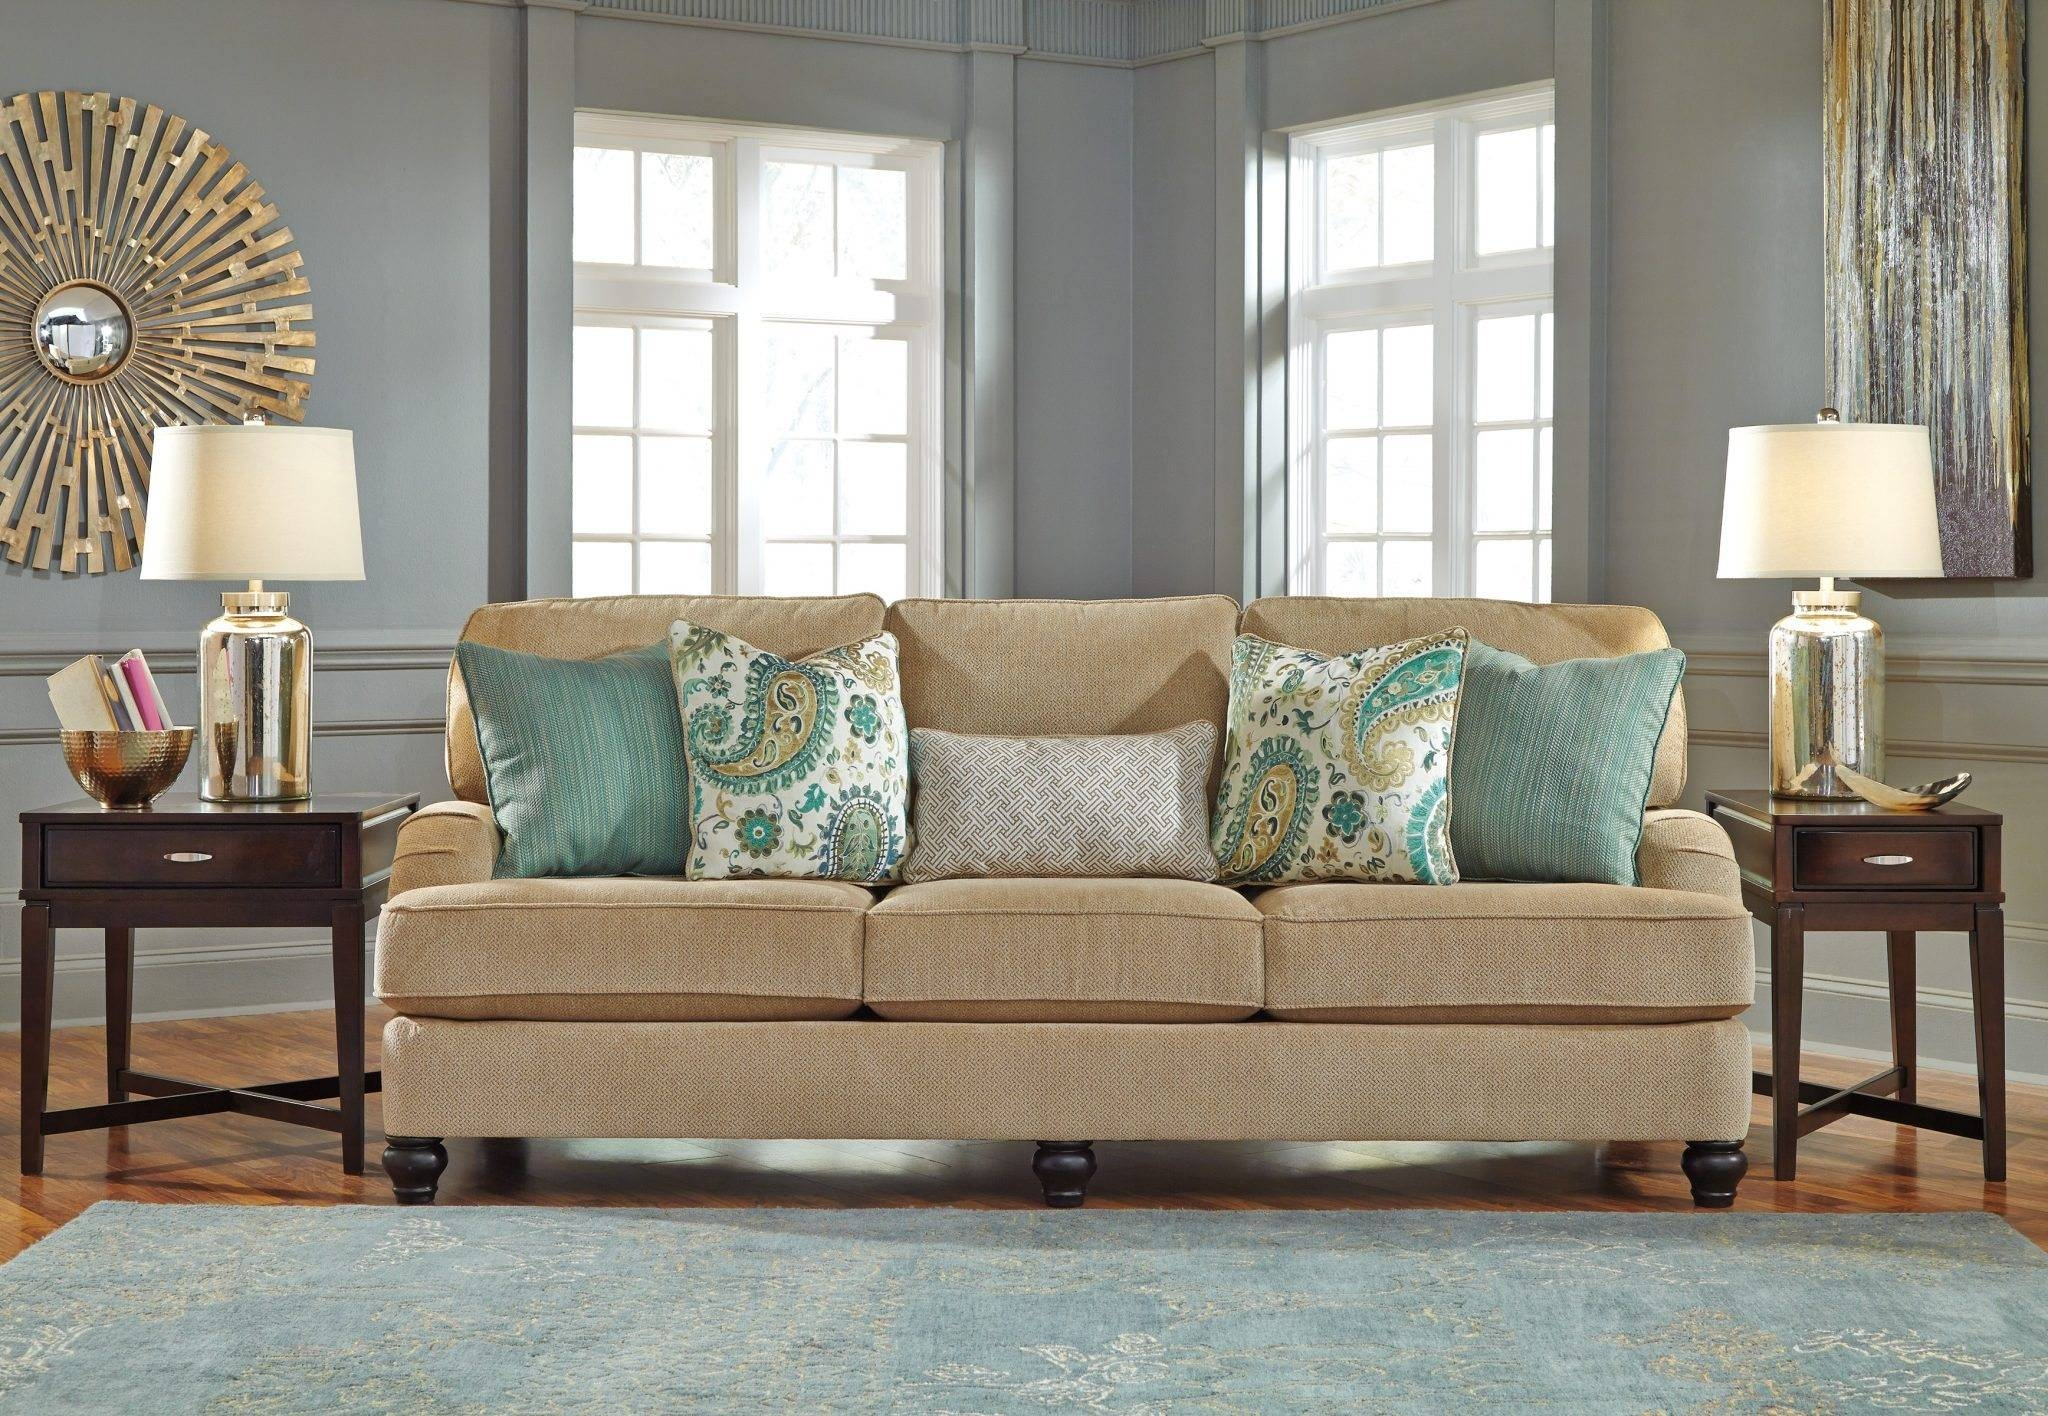 Best Furniture Mentor Oh: Furniture Store - Ashley Furniture within Ashley Tufted Sofa (Image 14 of 30)